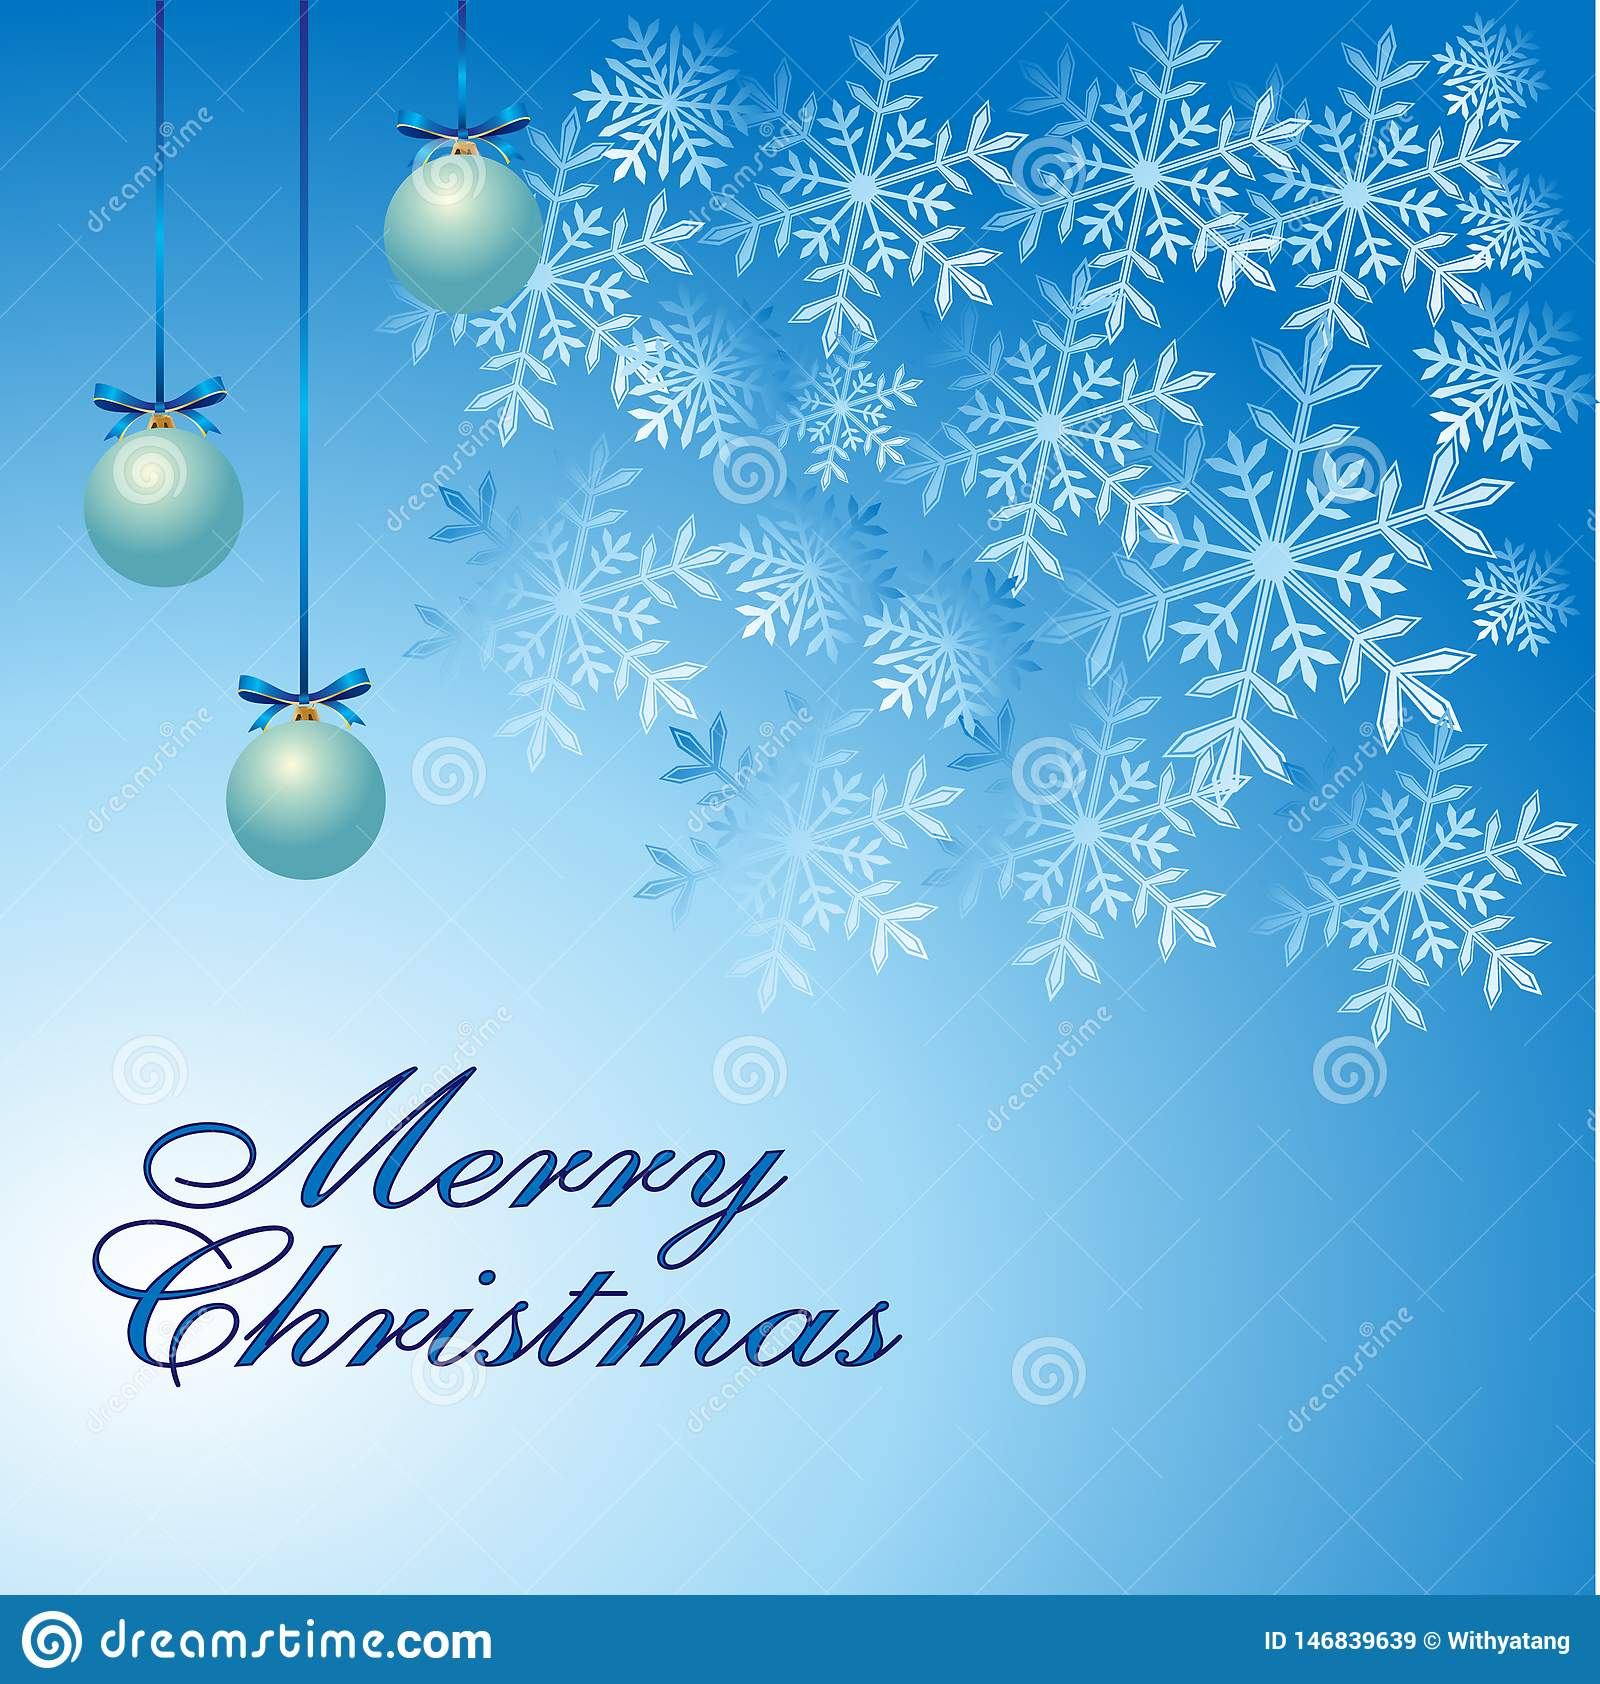 Merry Christmas greeting card, snowflakes, three blue decorative balls on winter blue background.vector illustration.